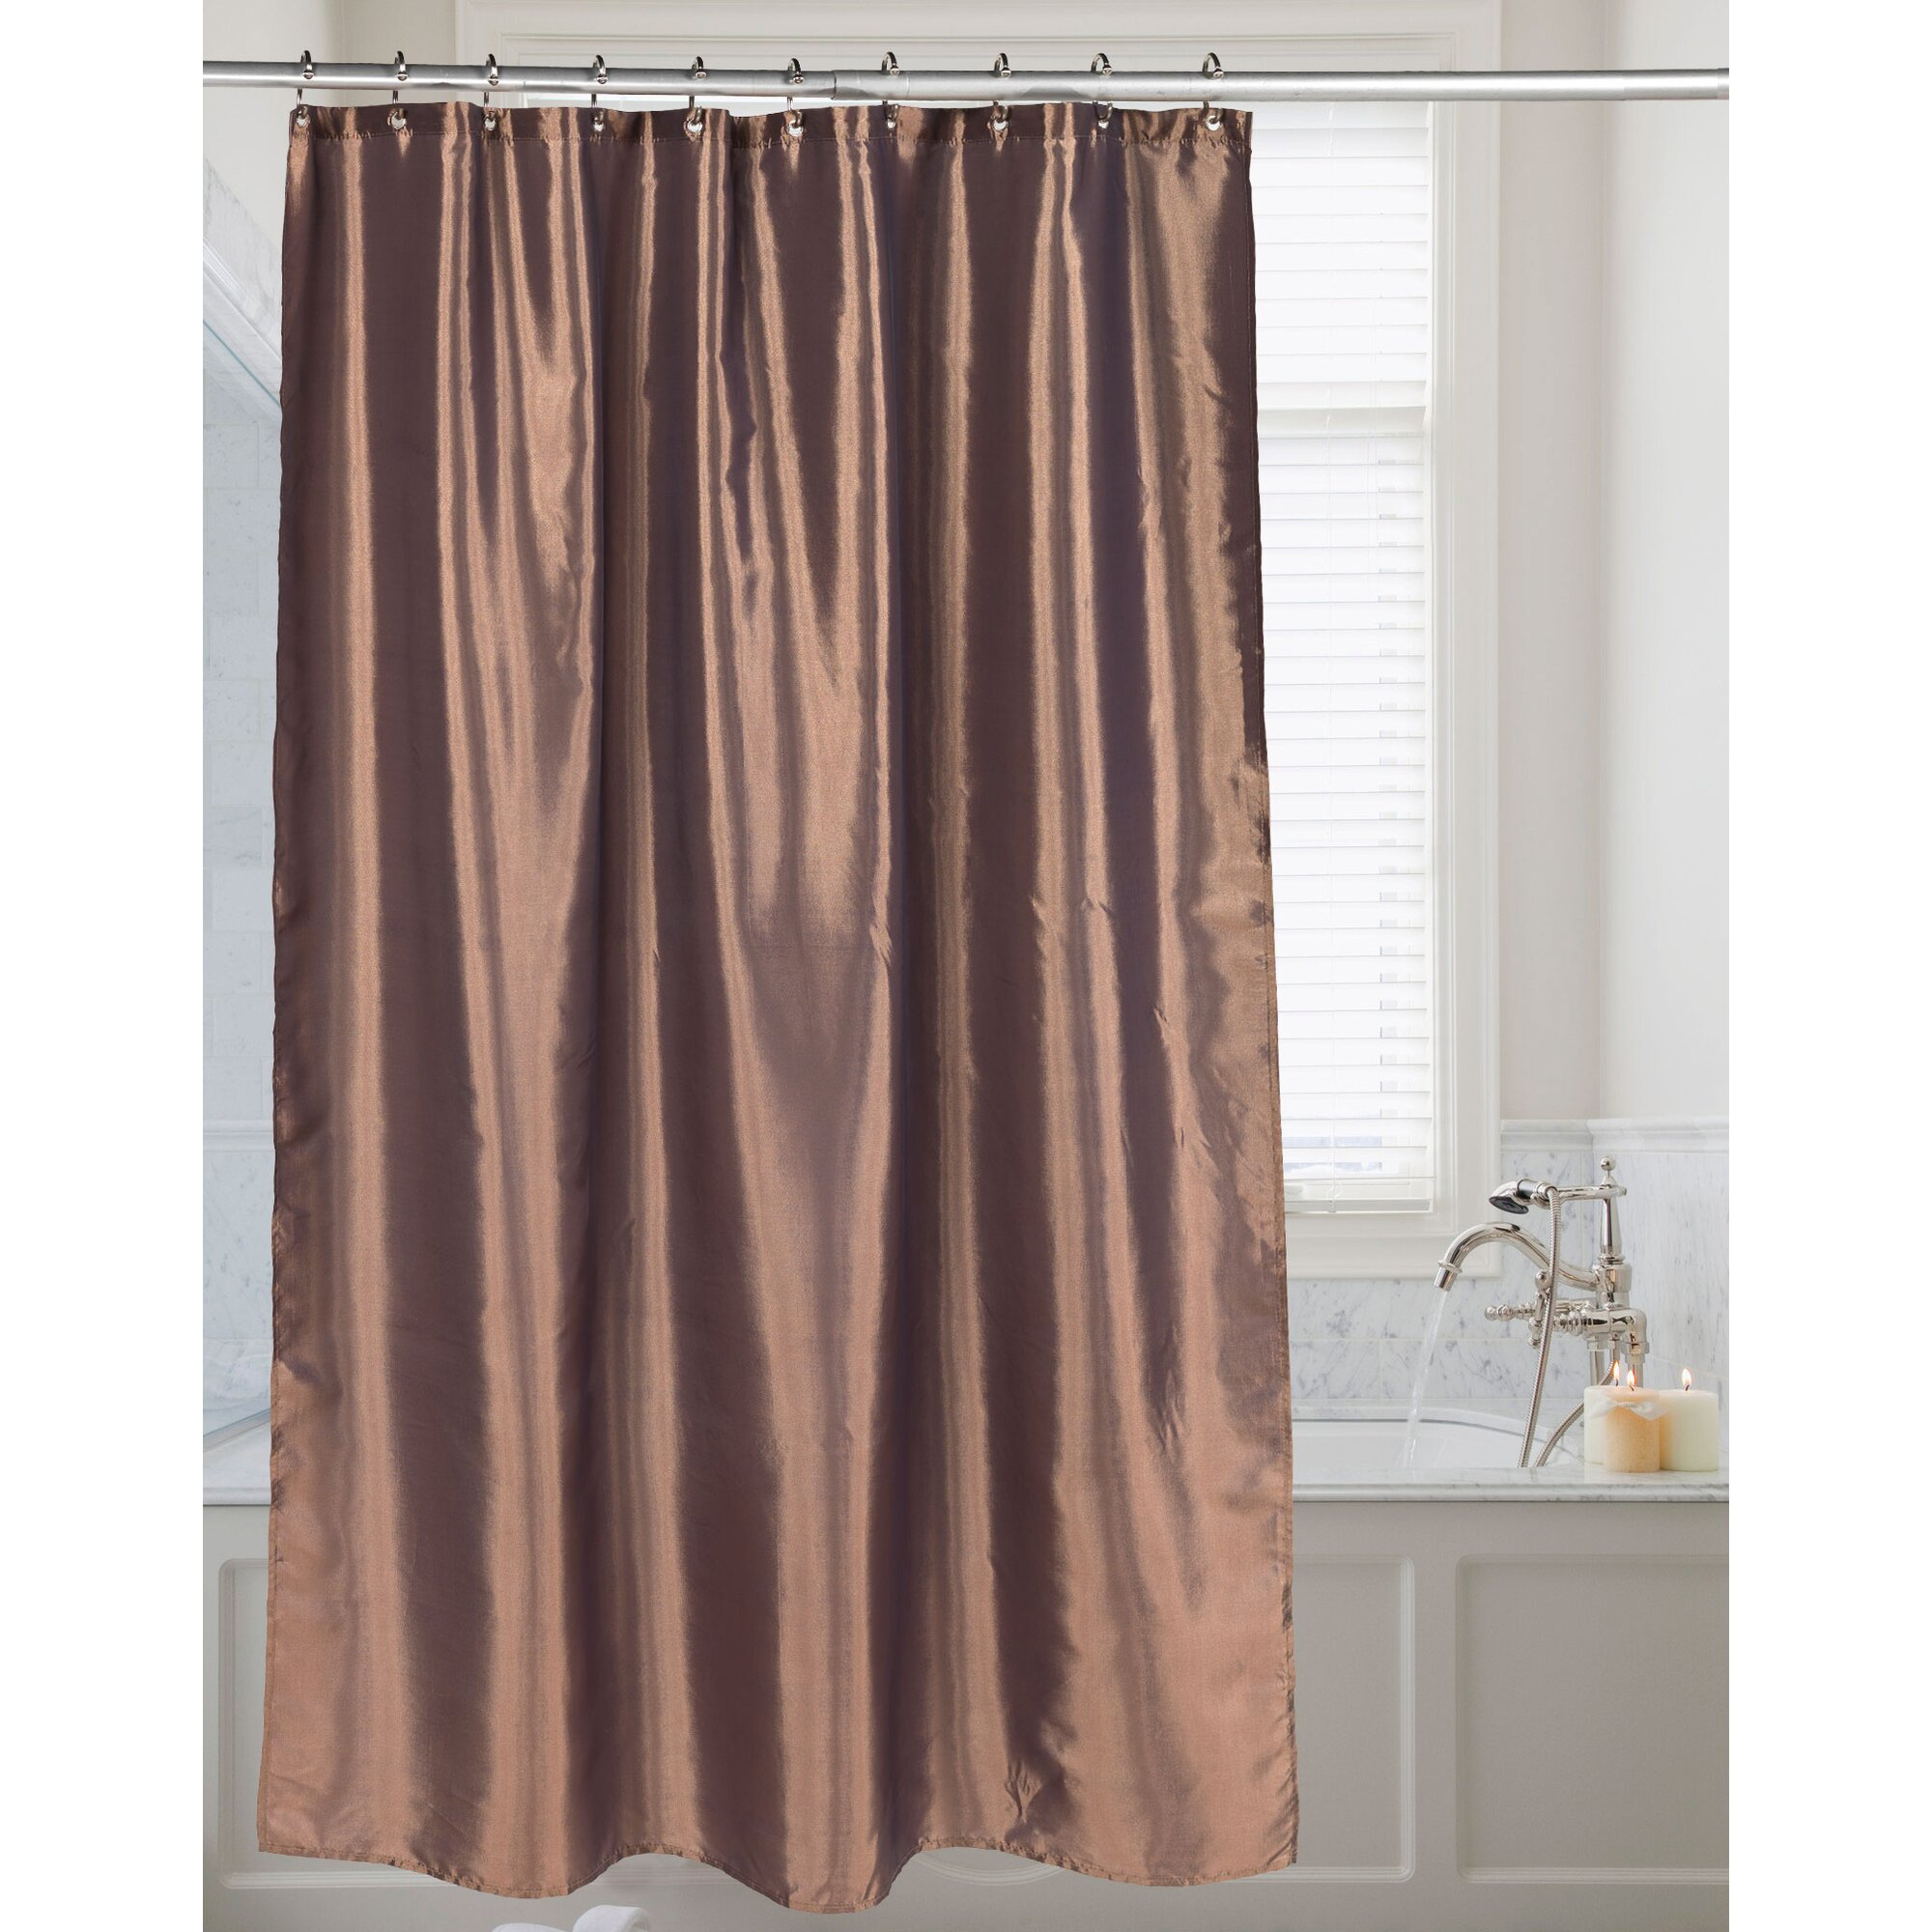 Solid Shower Curtains Youll Love Wayfair - Burgundy shower curtain sets